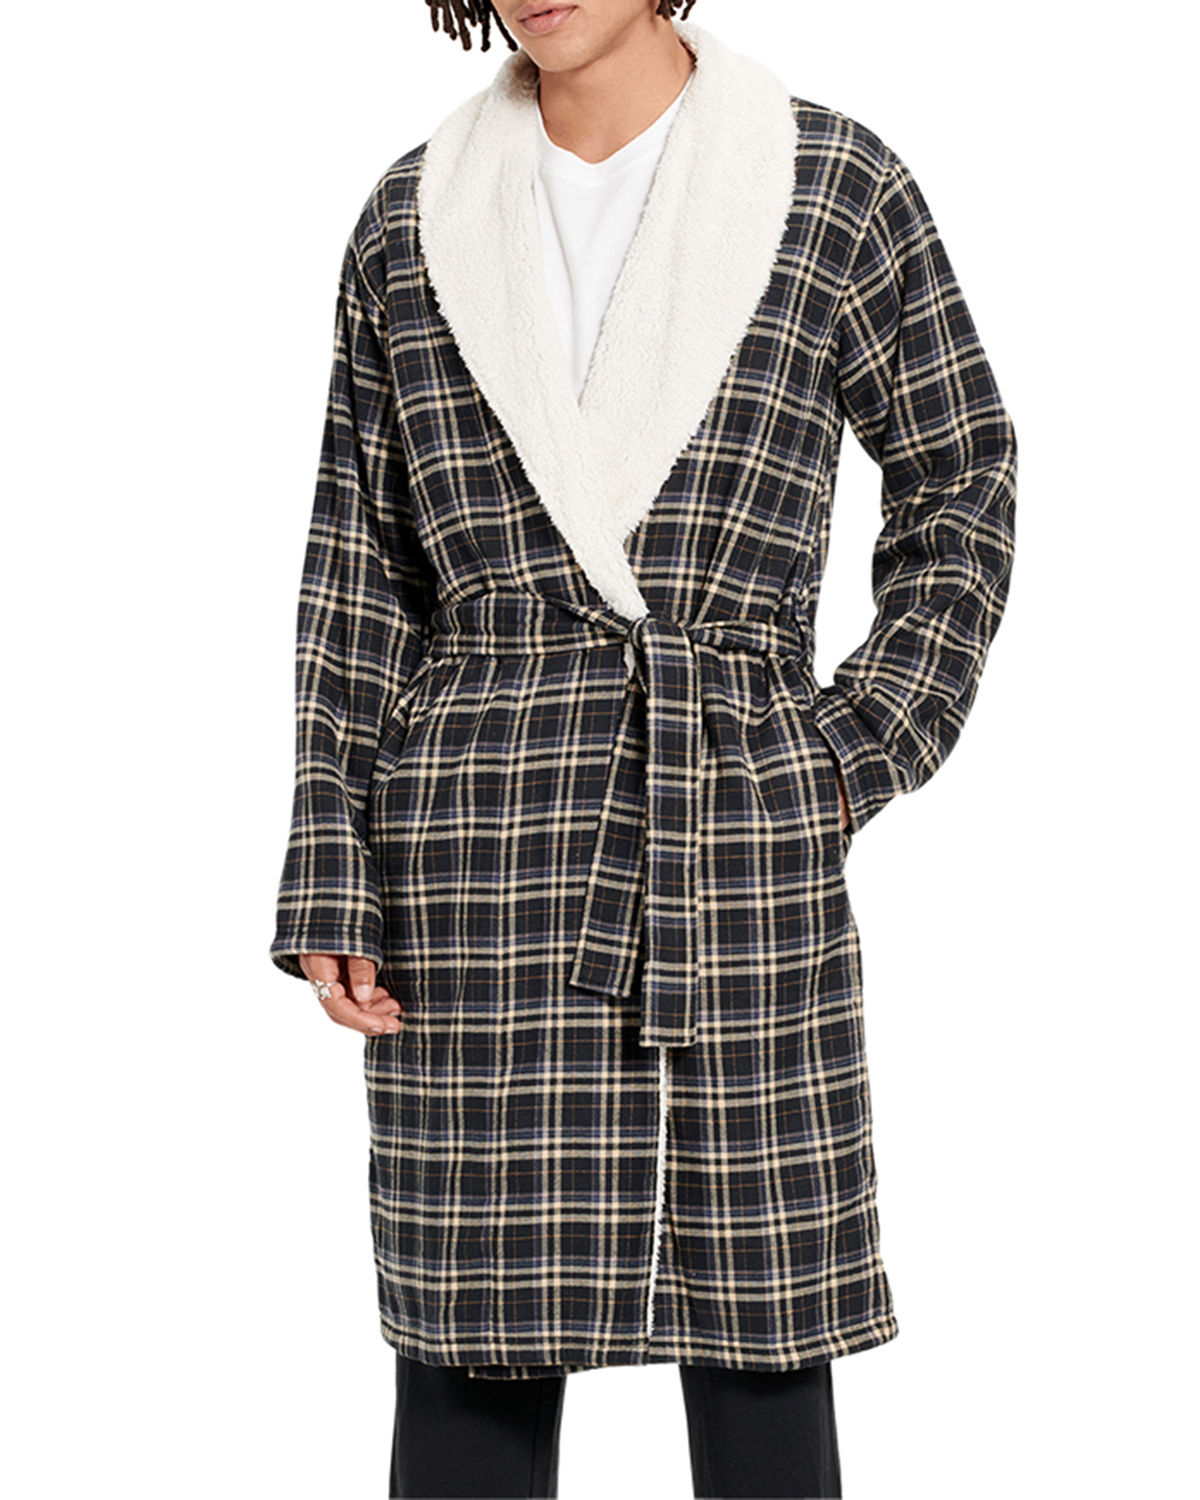 UGG Men's Kalib Fleece-Lined Plaid Robe